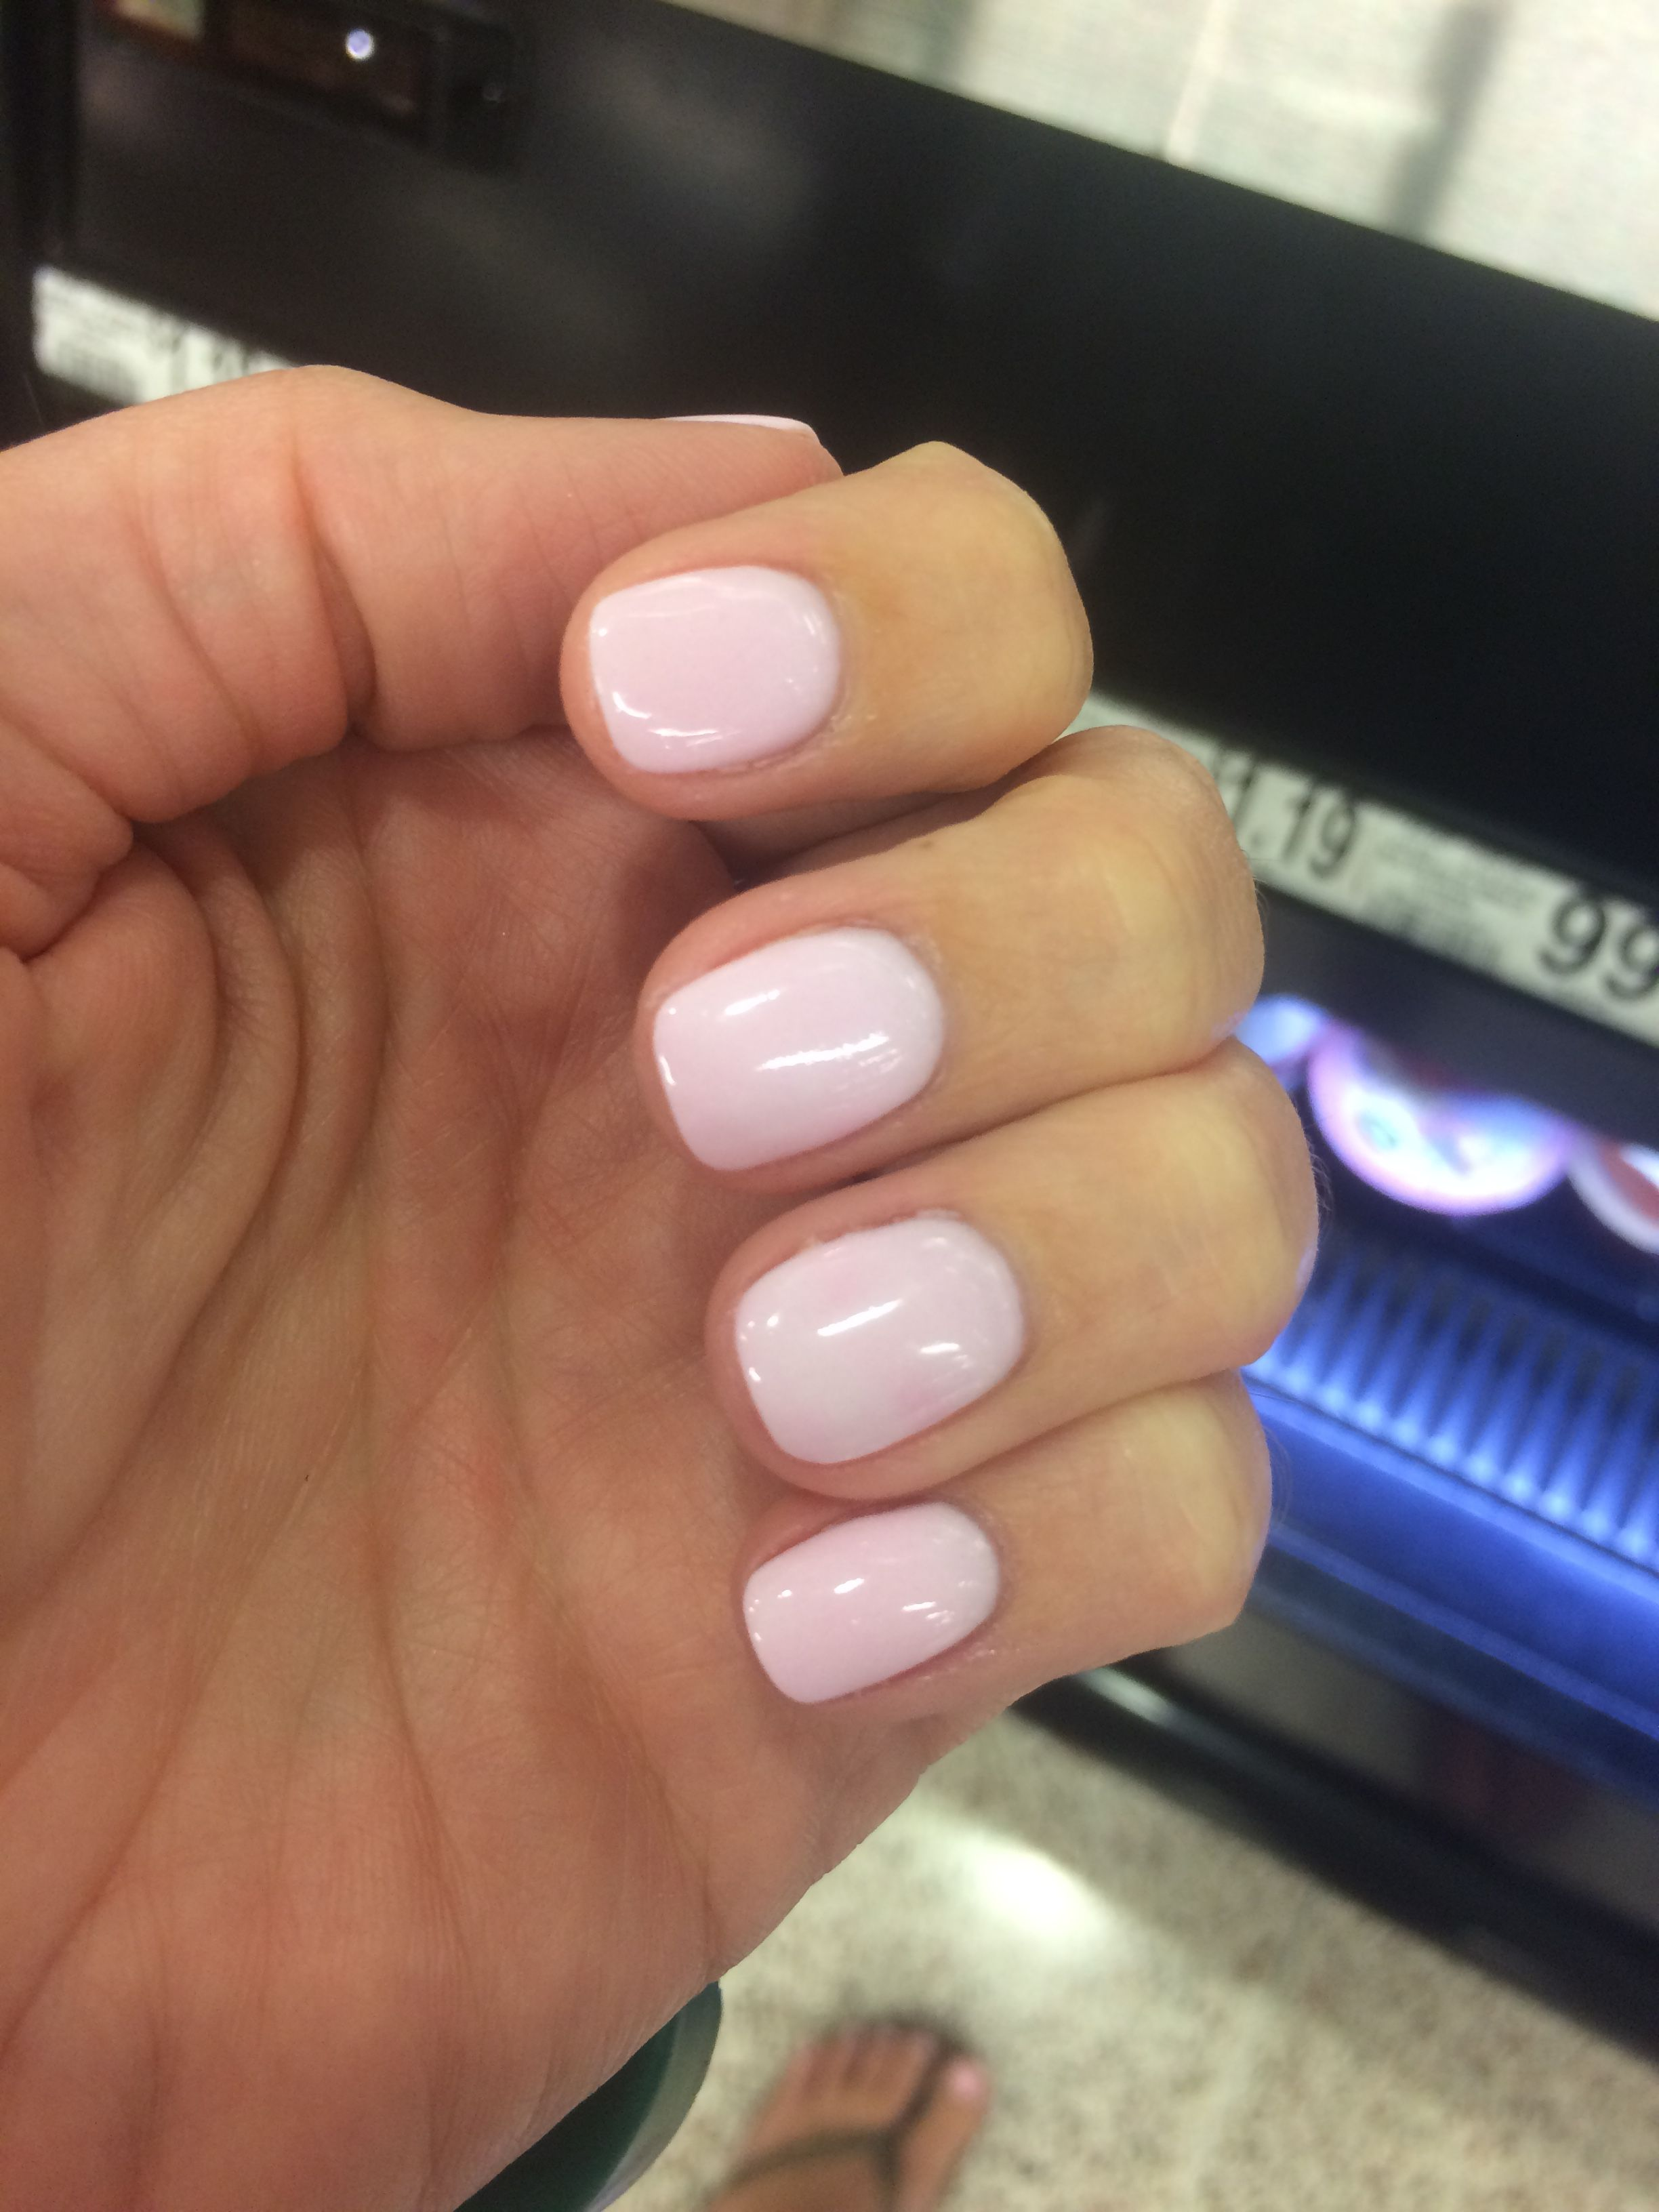 Nexgen S45 South Carolina Matches Pretty Well With Essie Fiji Nexgen Nails Colors Sns